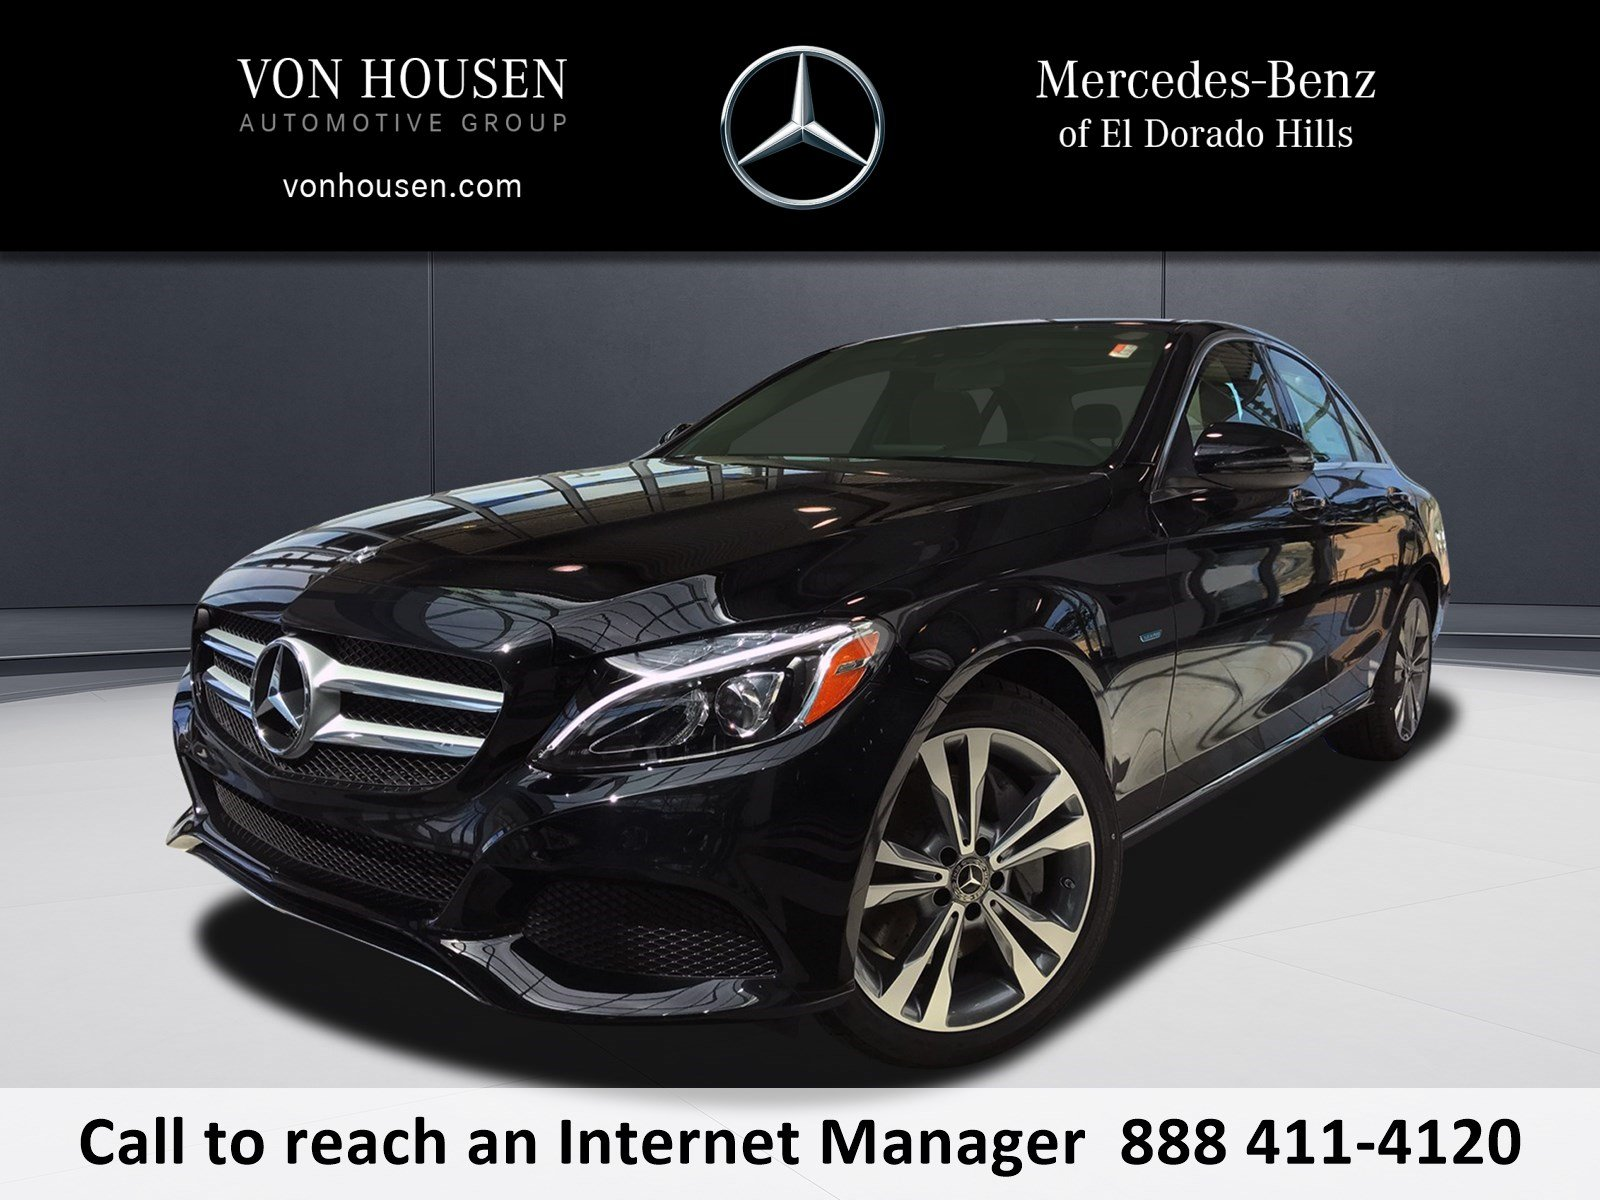 108 new cars suvs in stock mercedes benz of el dorado hills for Mercedes benz of el dorado hills